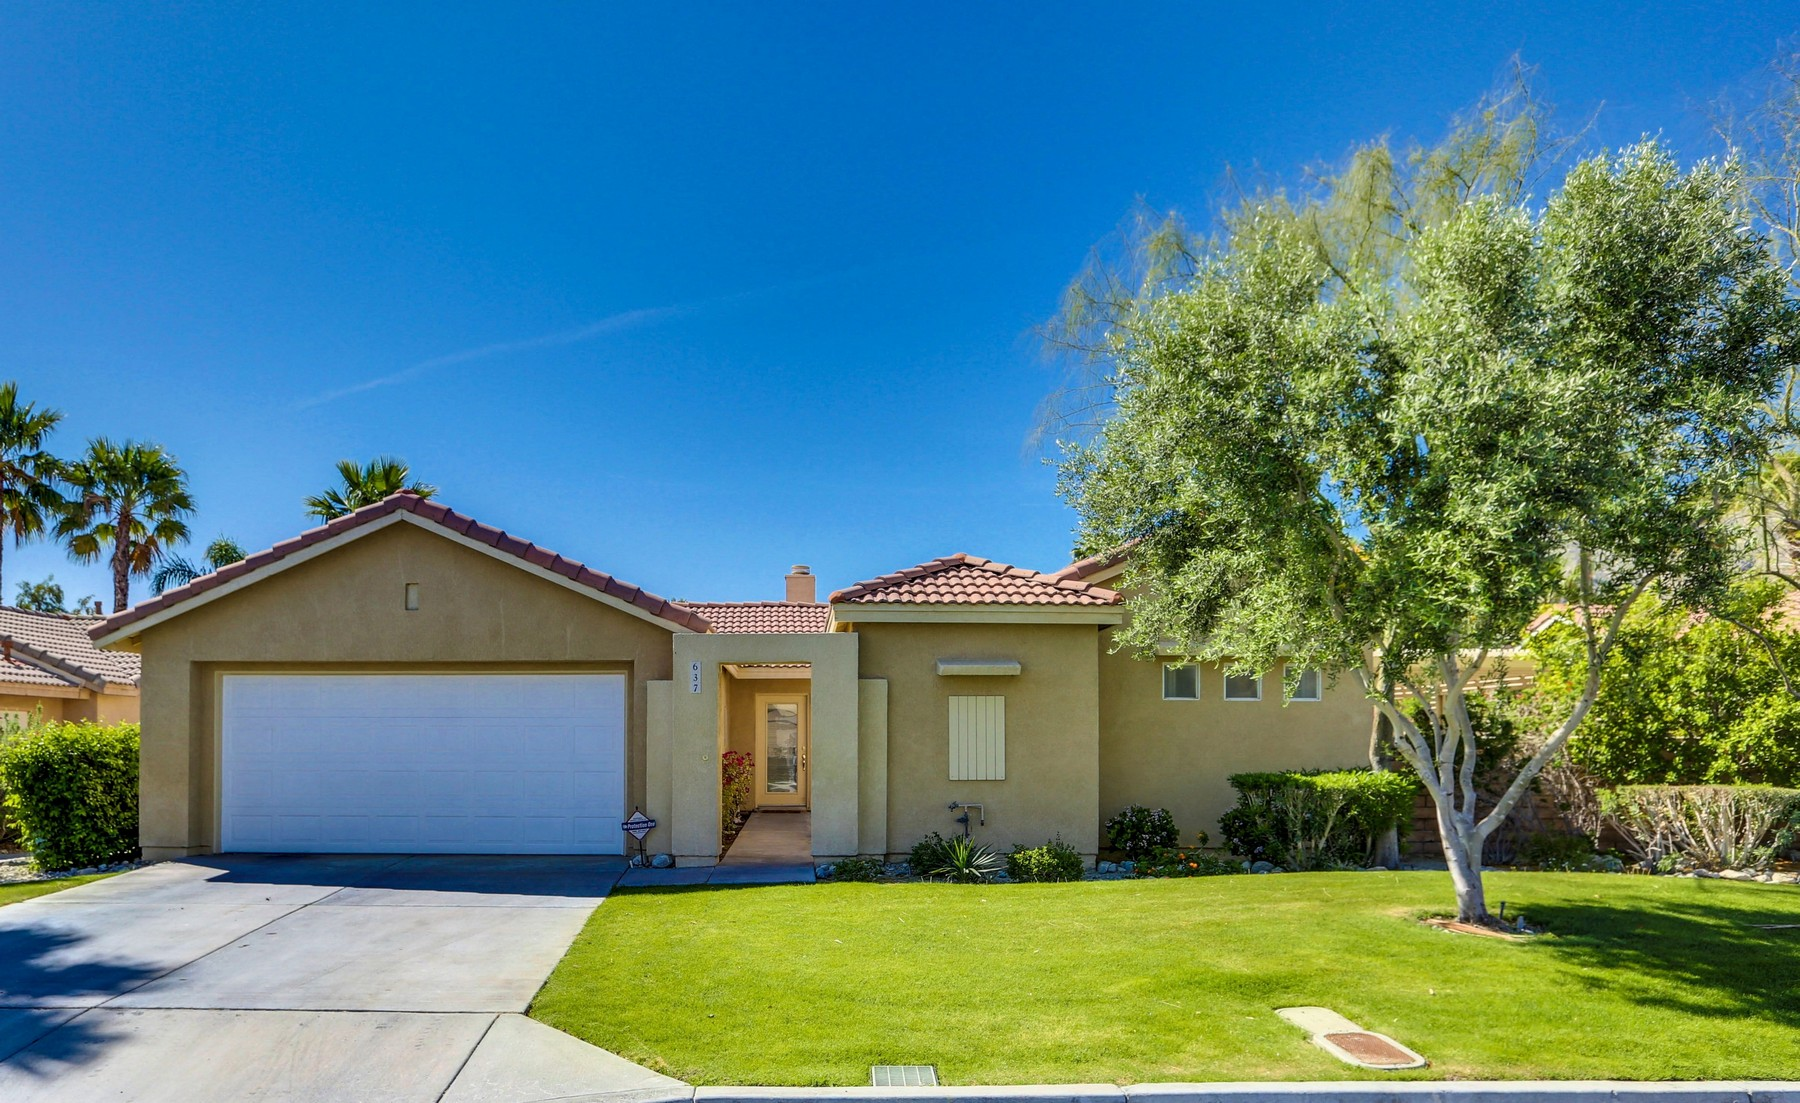 Single Family Home for Sale at 637 Poppy St Palm Springs, California, 92262 United States